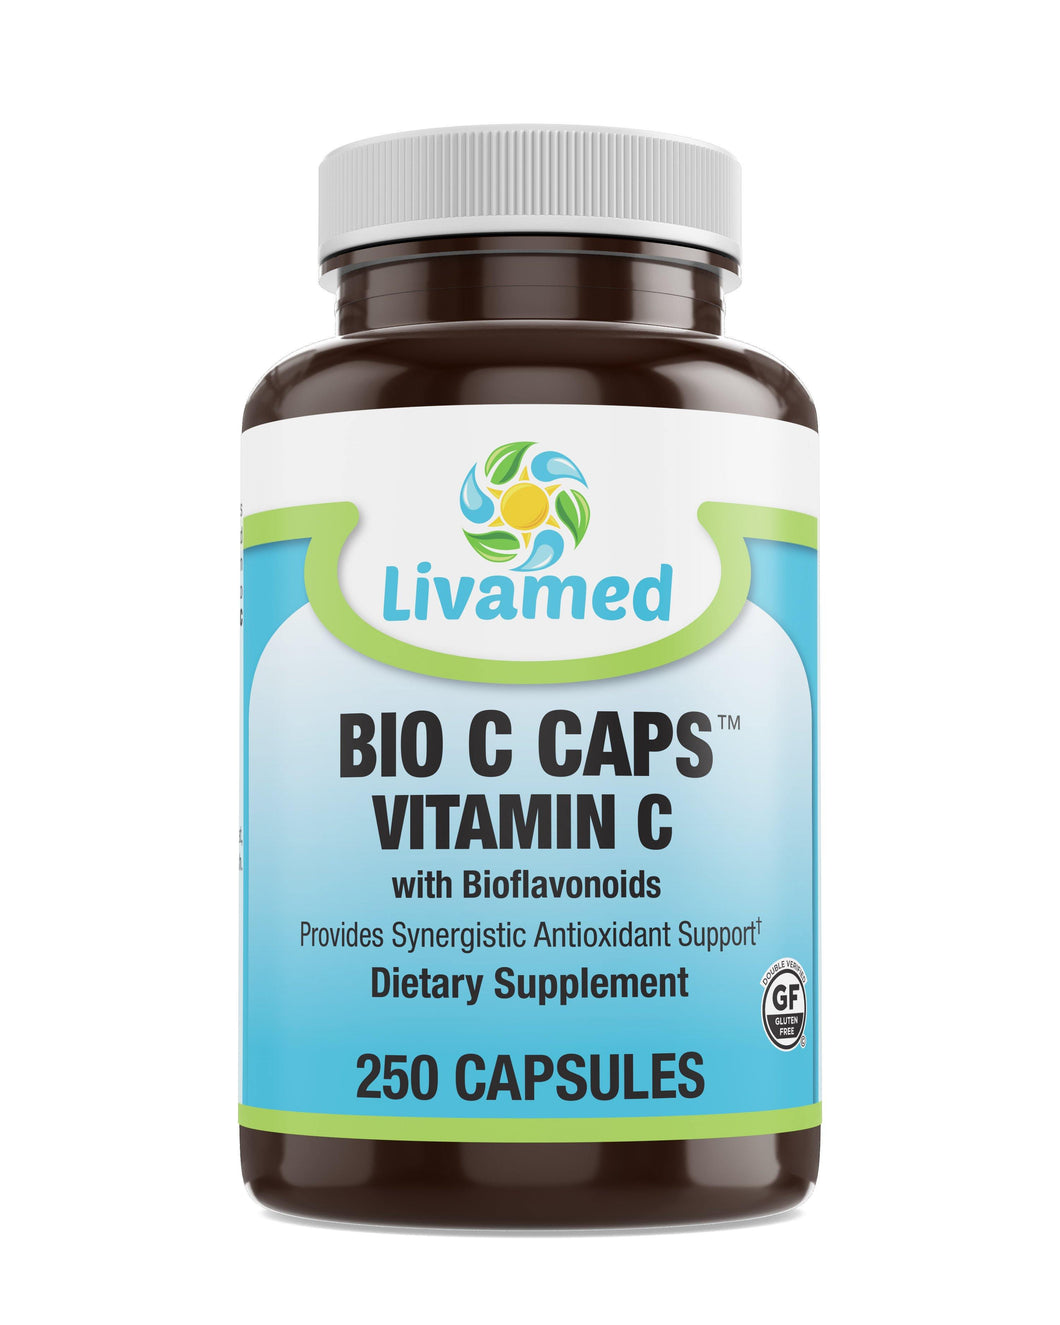 Livamed - Bio C Caps™ Vitamin C with Bioflavonoids 250 Count